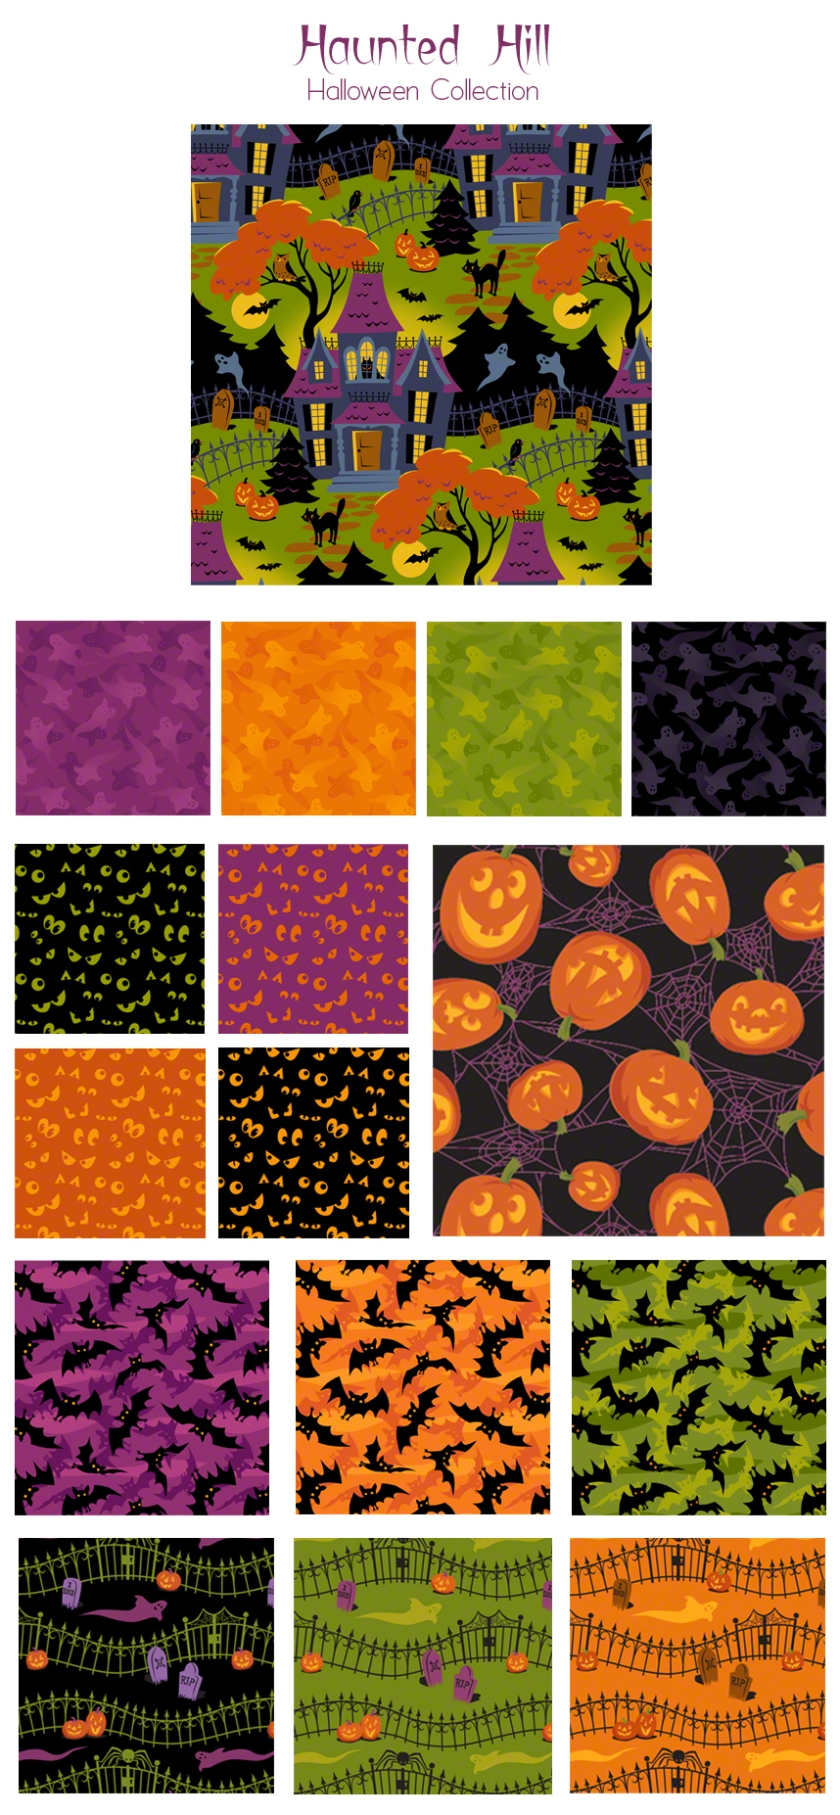 Halloween Collection pswd